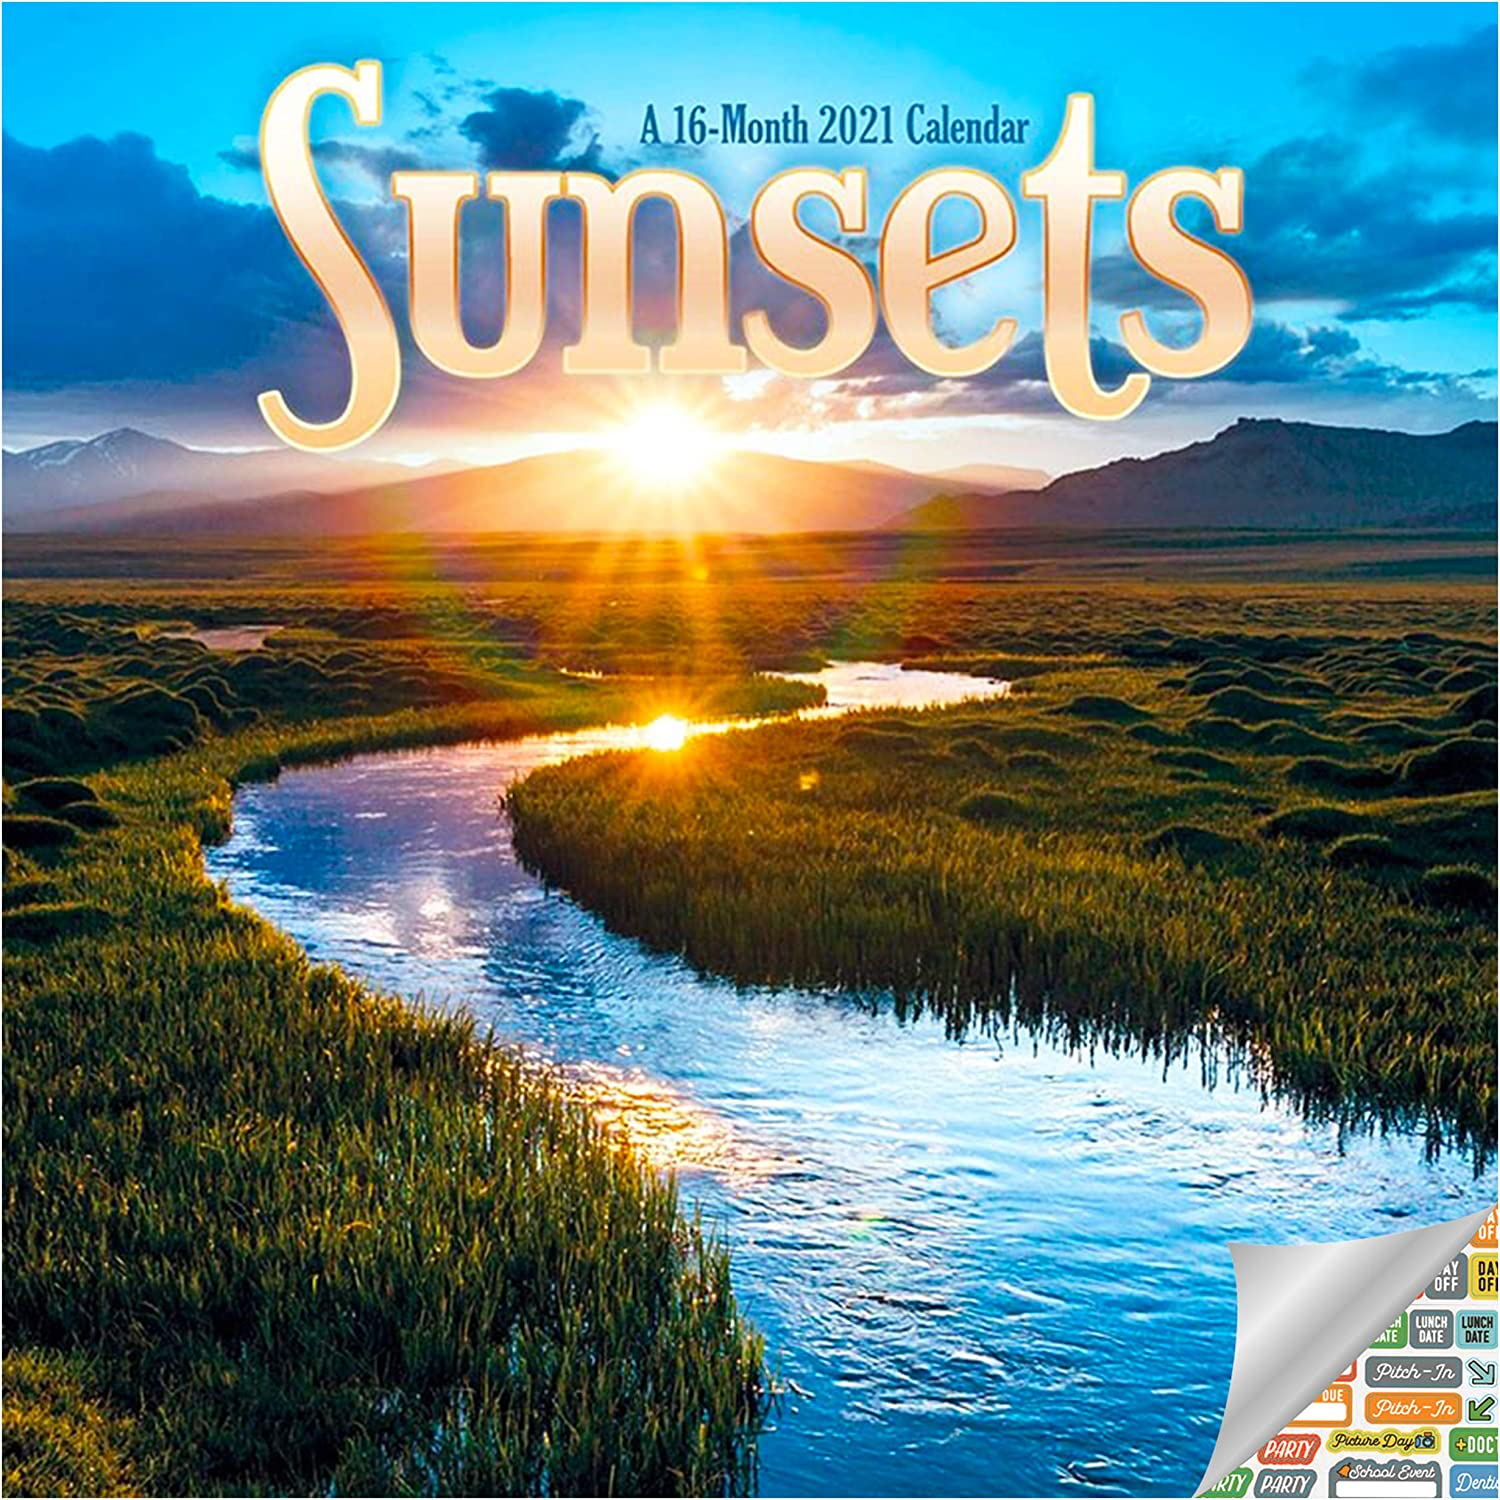 Sunsets Calendar 2021 Bundle - Deluxe 2021 Sunsets Mini Calendar with Over 100 Calendar Stickers (Nature Gifts, Office Supplies)